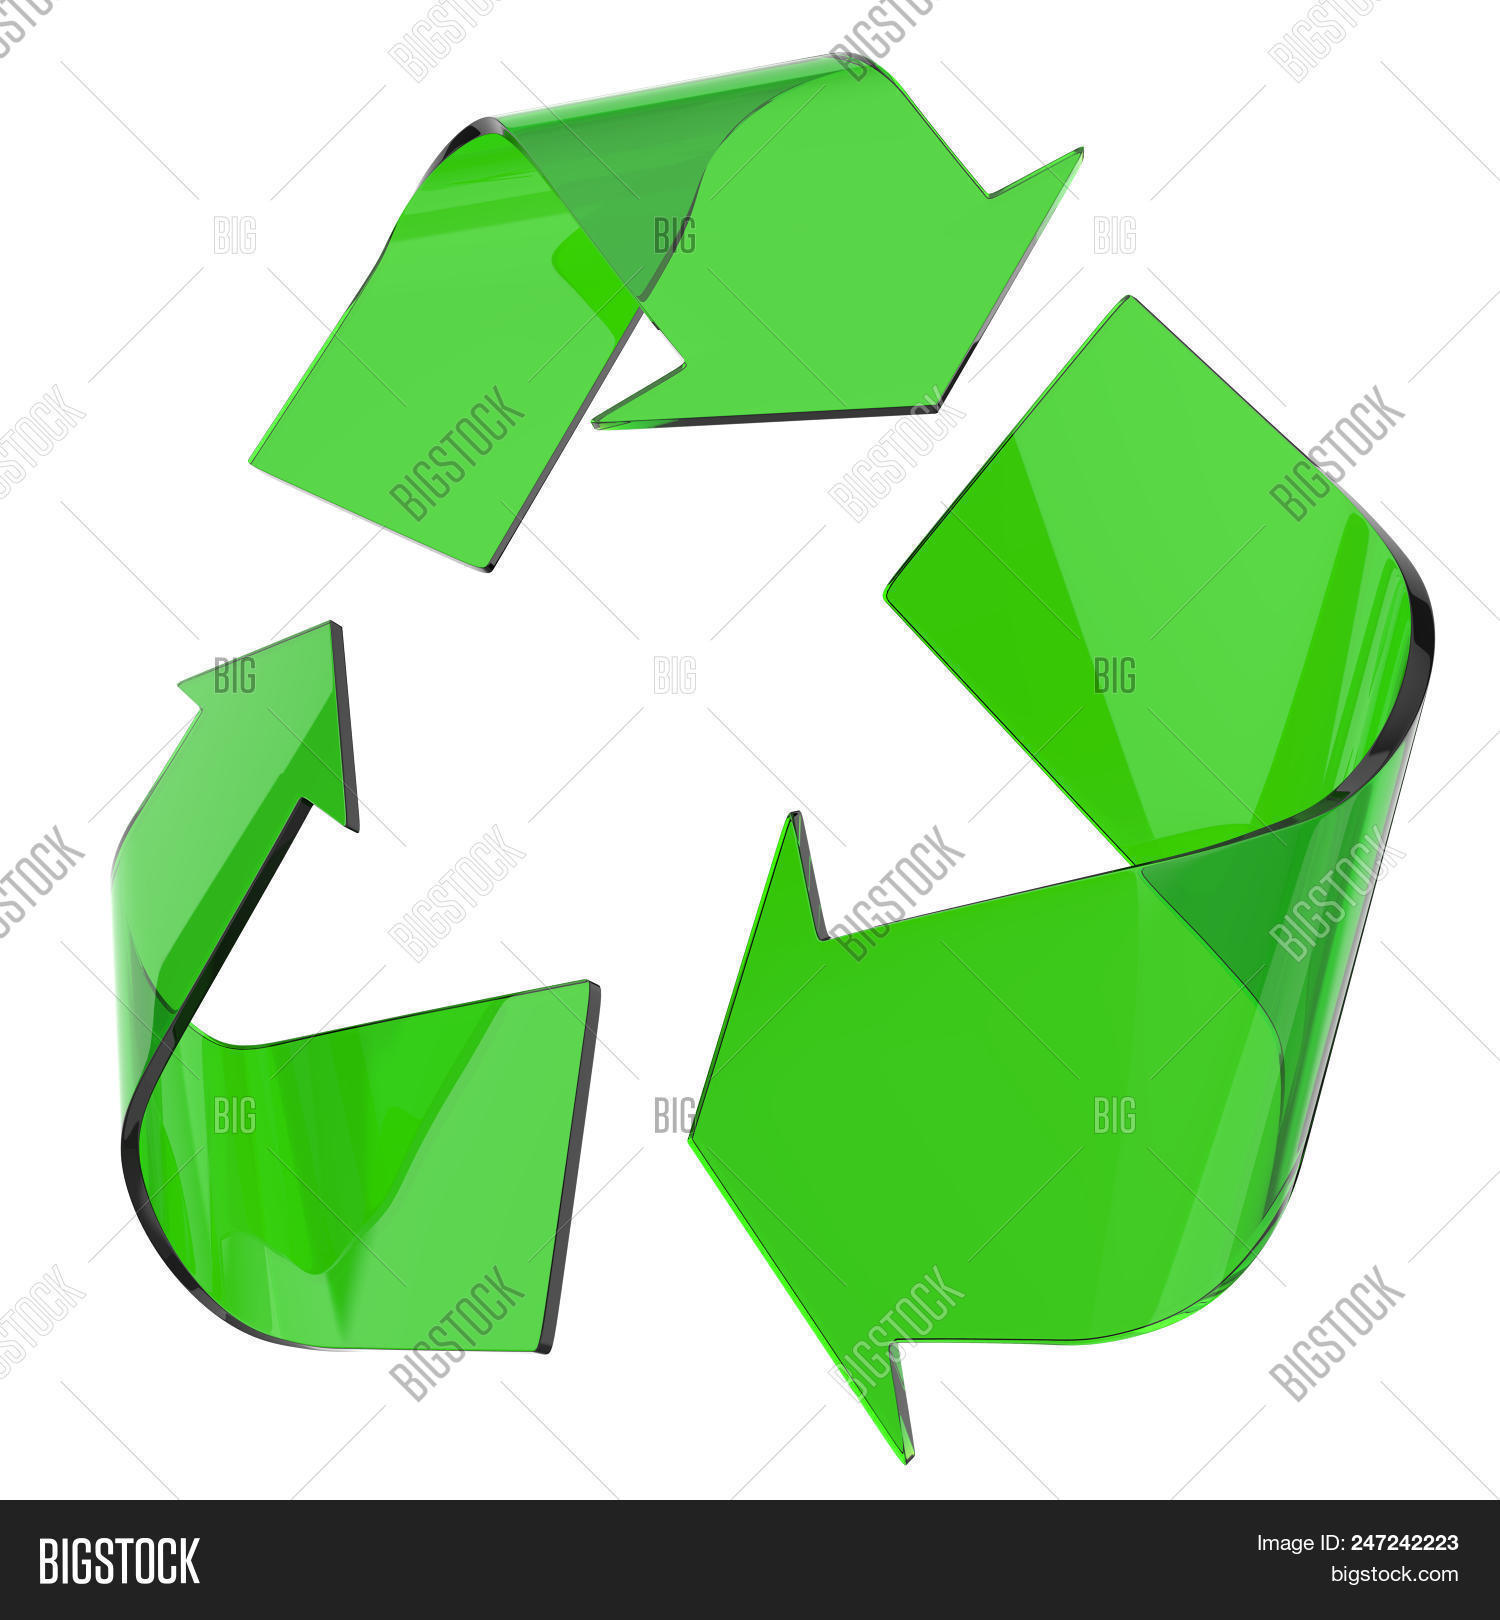 Green Glass Recycling Image Photo Free Trial Bigstock